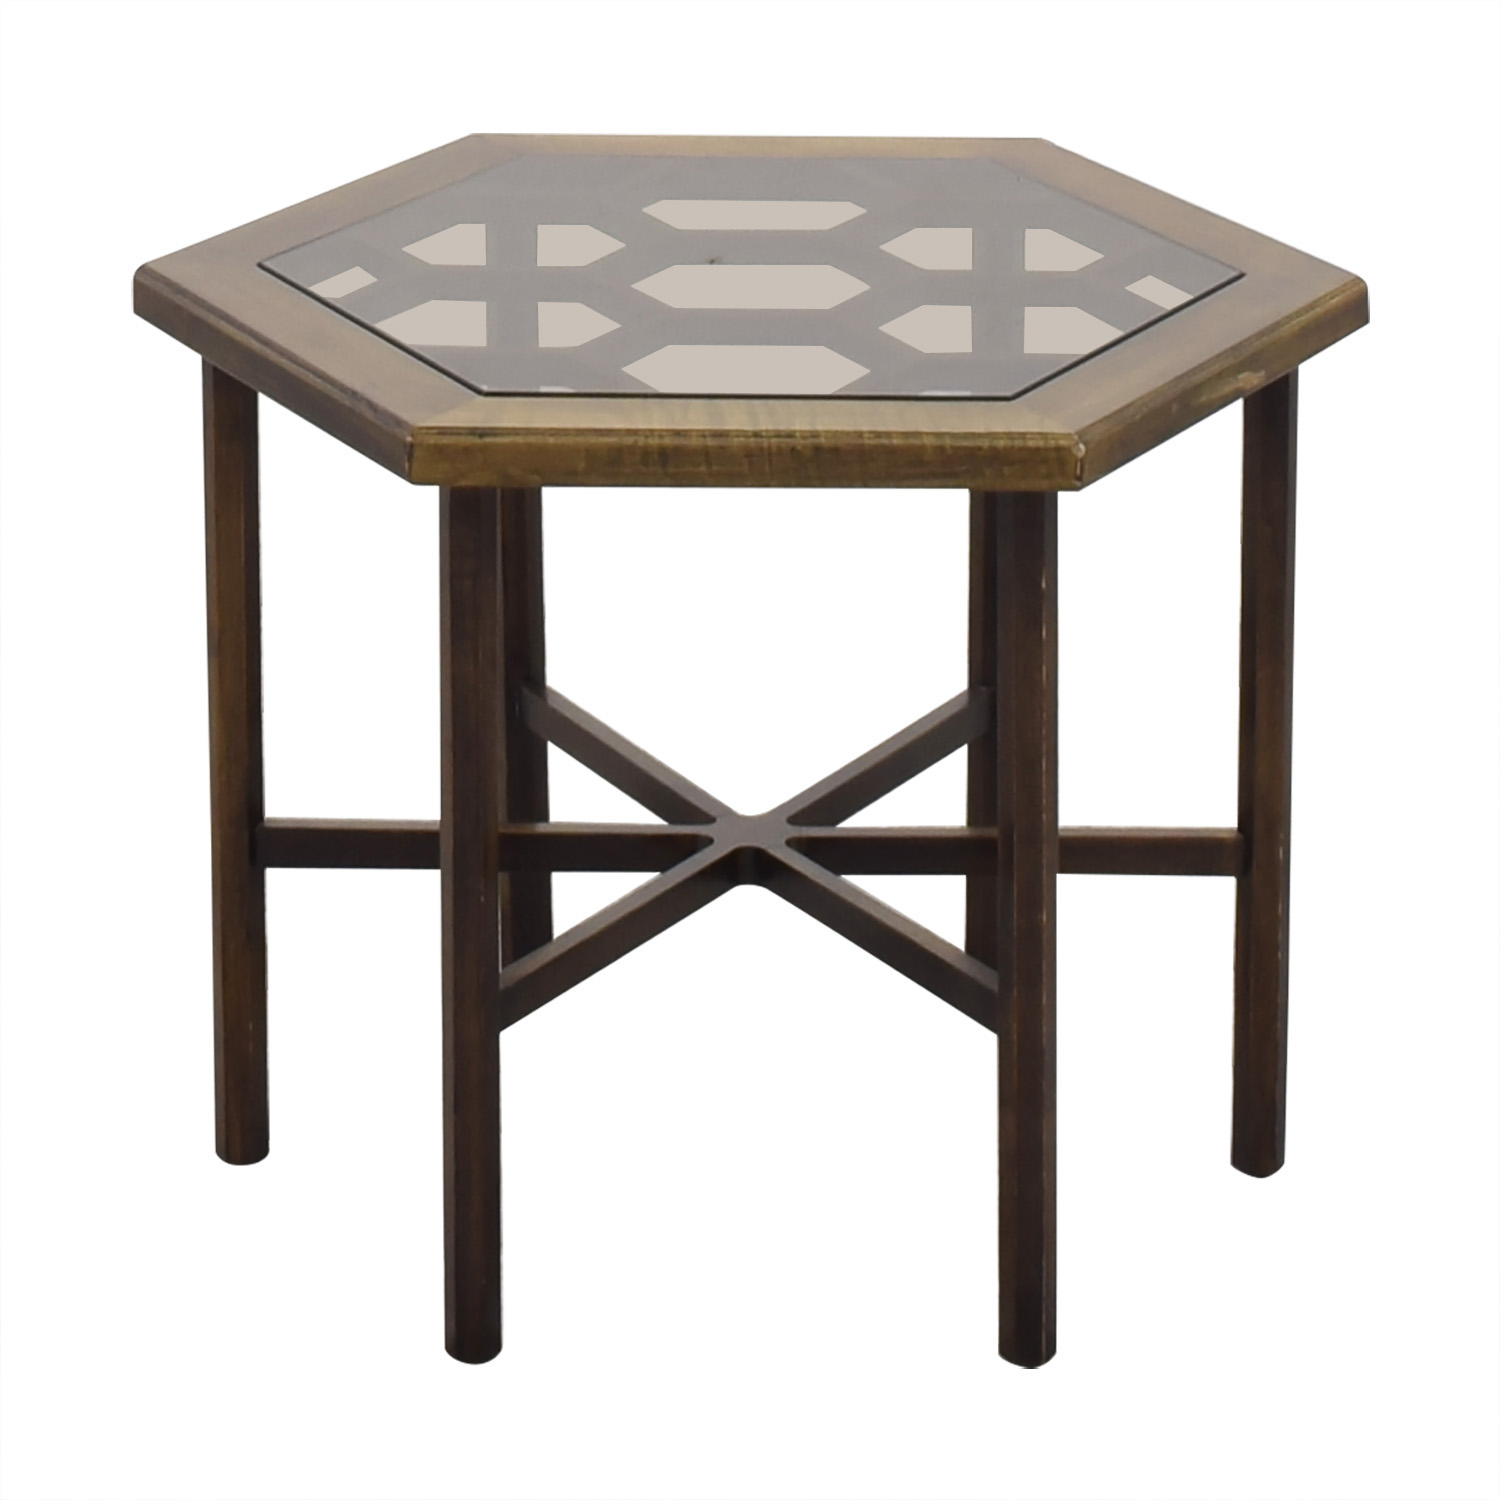 John Widdicomb Co. John Widdicomb Hexagonal Side Table nyc